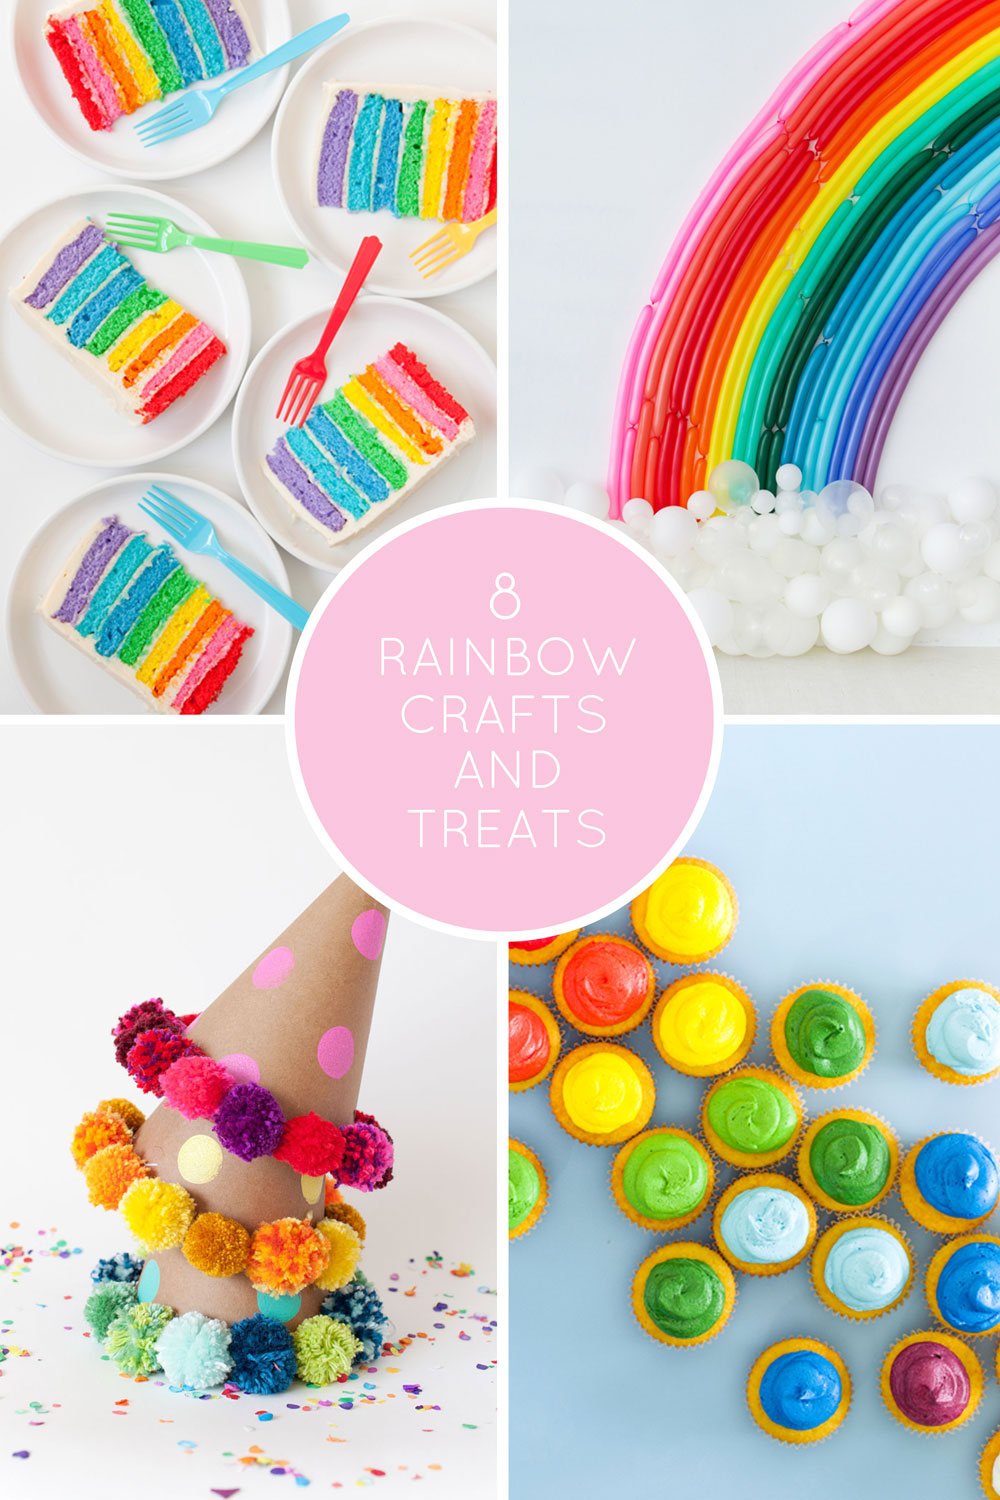 8-Rainbow-Crafts-and-Treats